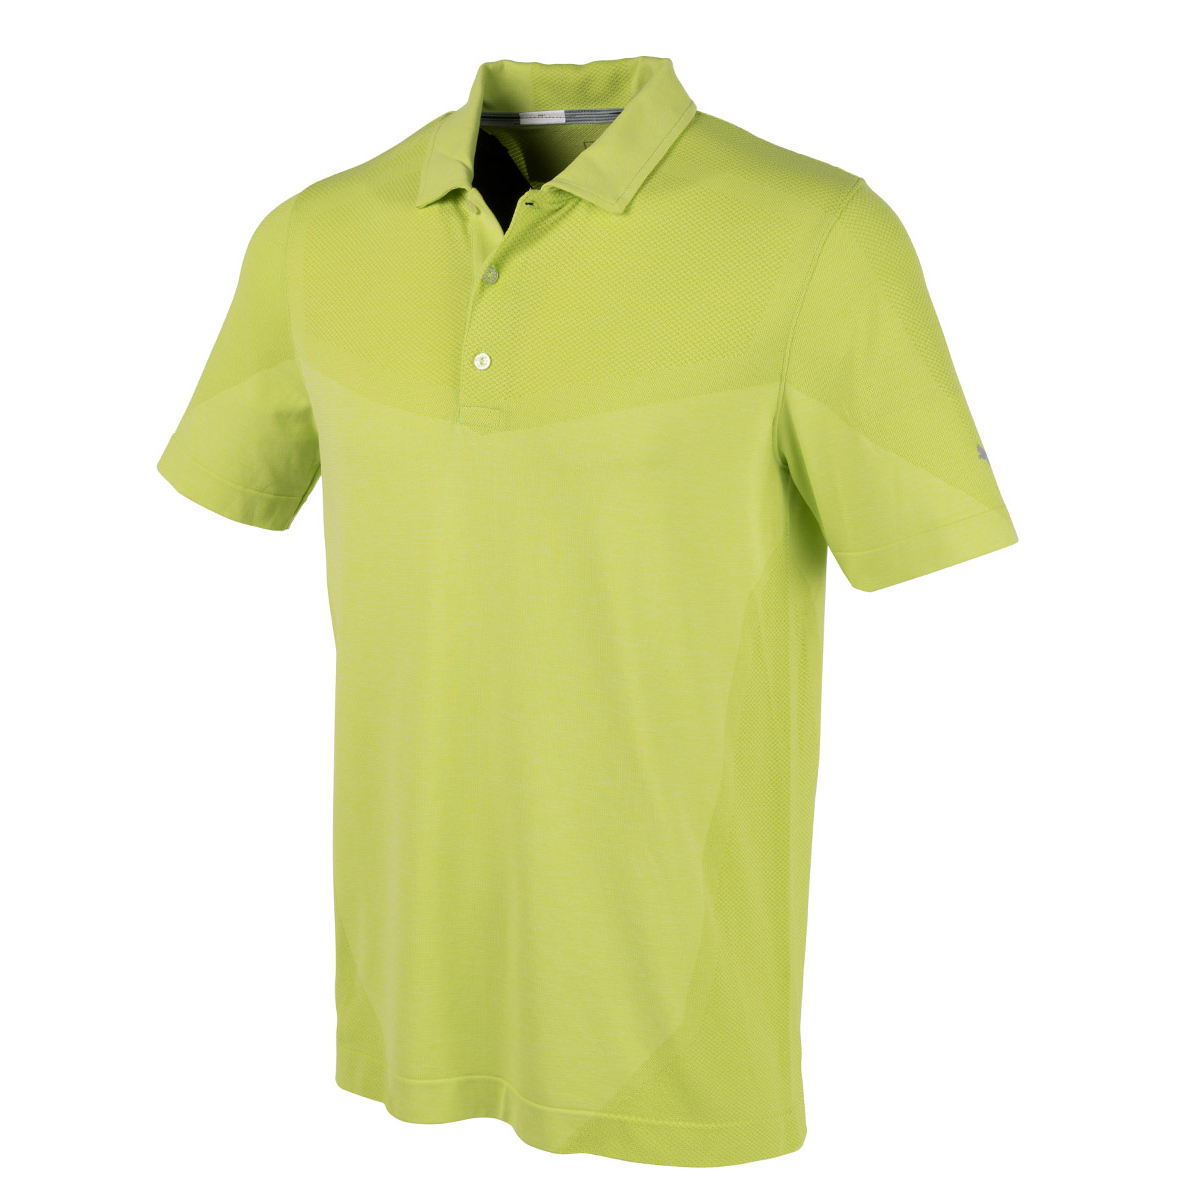 Puma golf evoknit seamless polo shirt 2018 from american golf for Personalised golf shirts uk